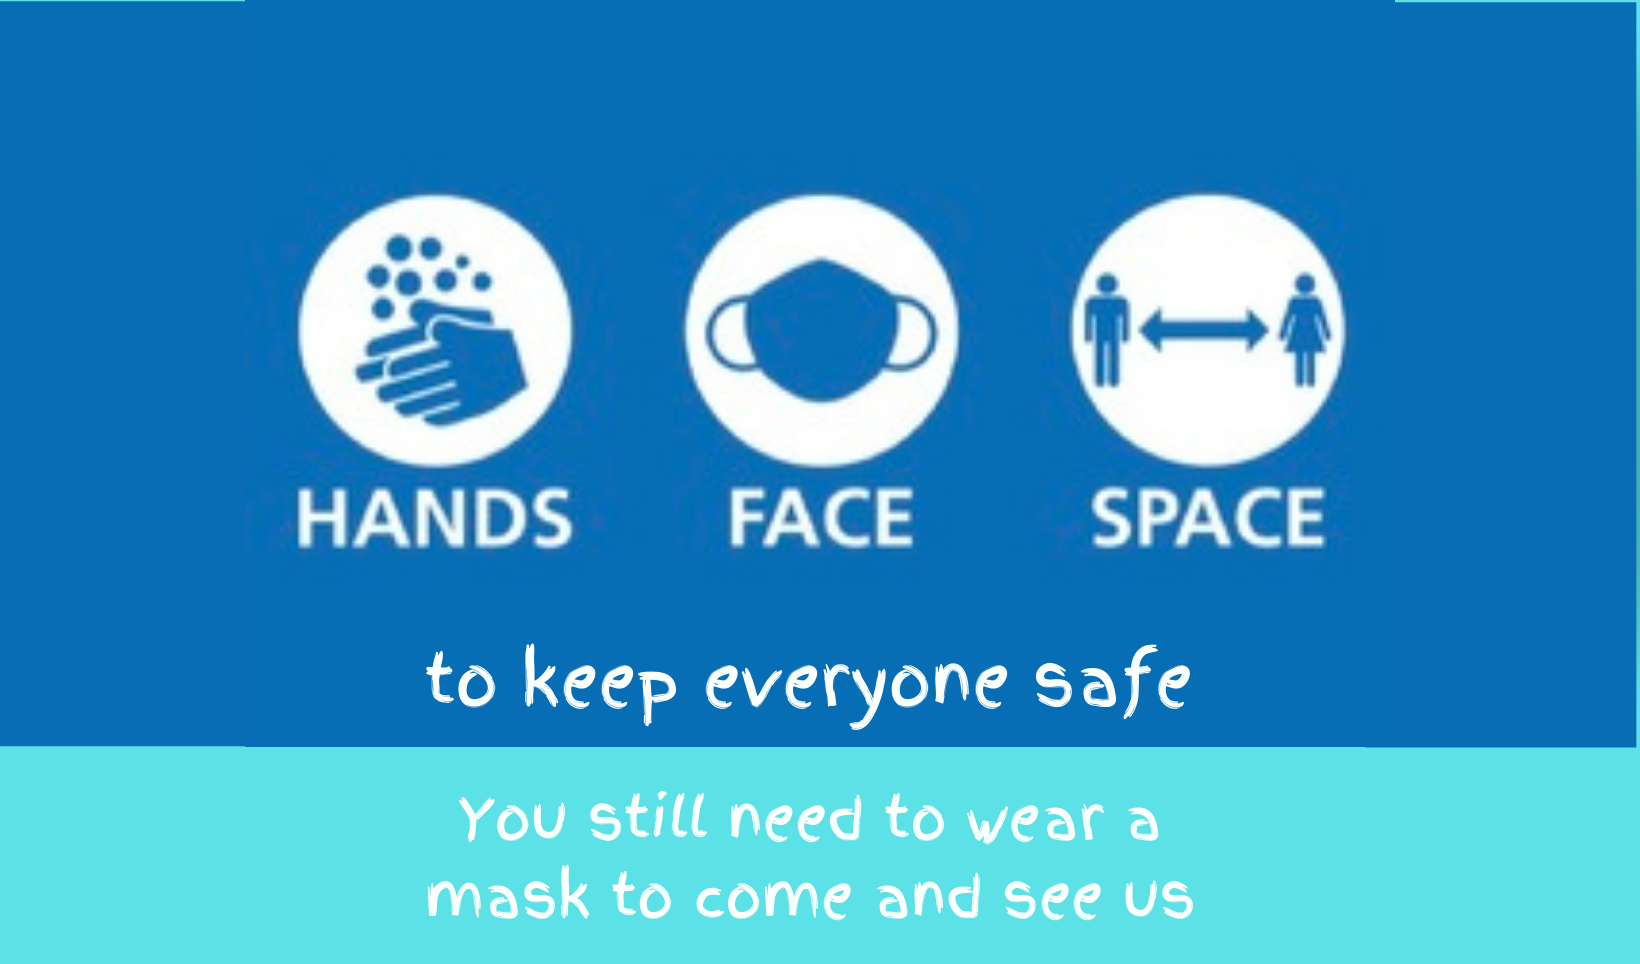 You Still Need To Wear A Mask To Come And See Us